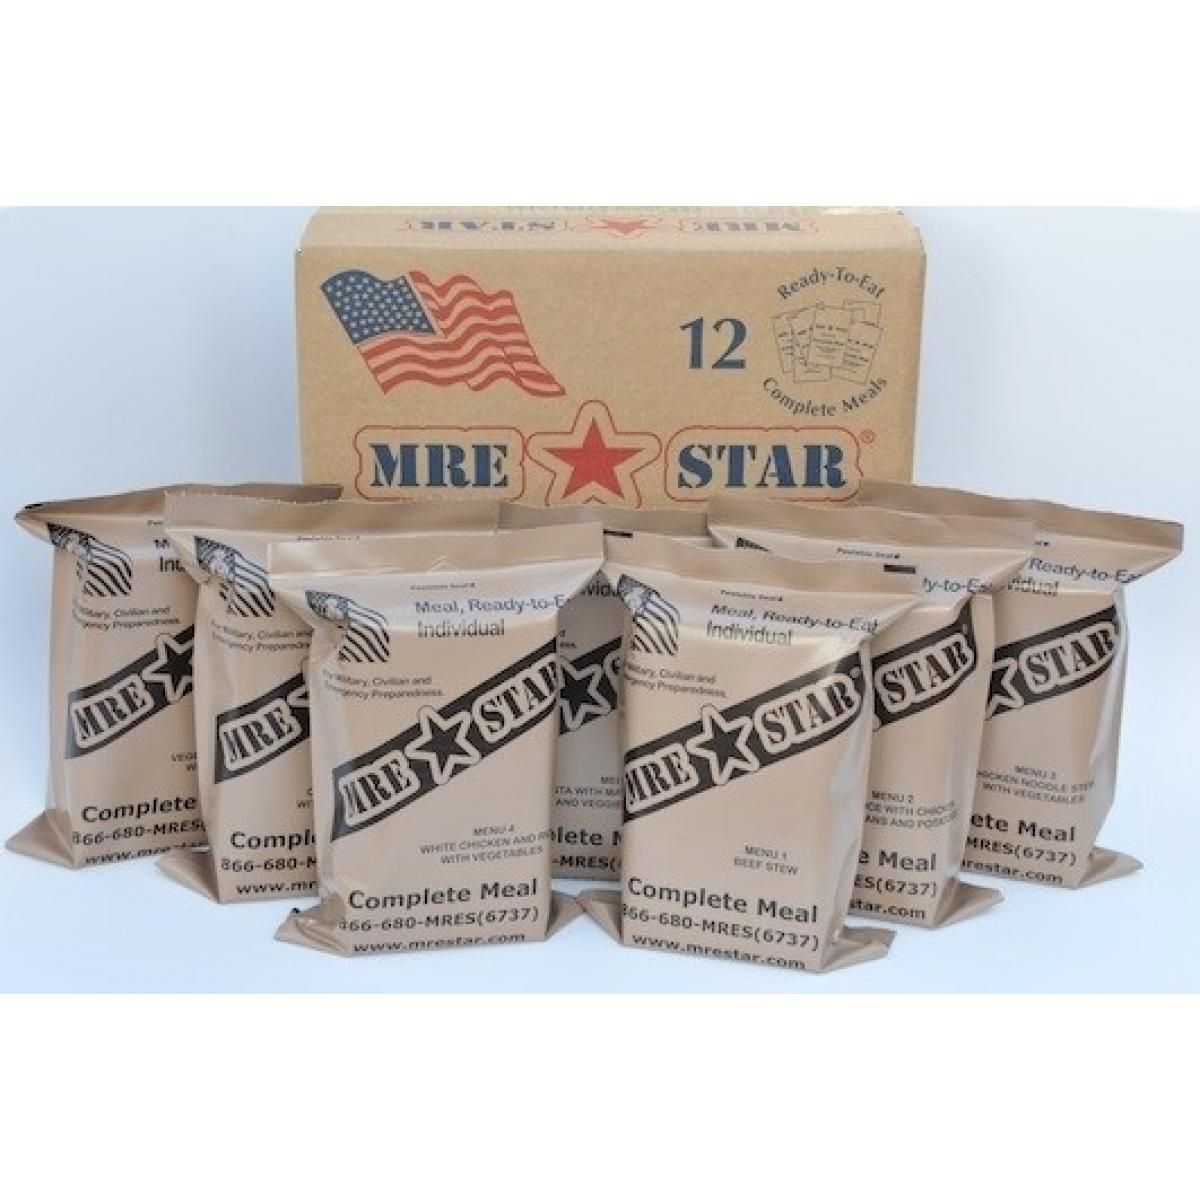 Click here to buy MRE Star Case of 12 MRE STAR Standard With Heater.